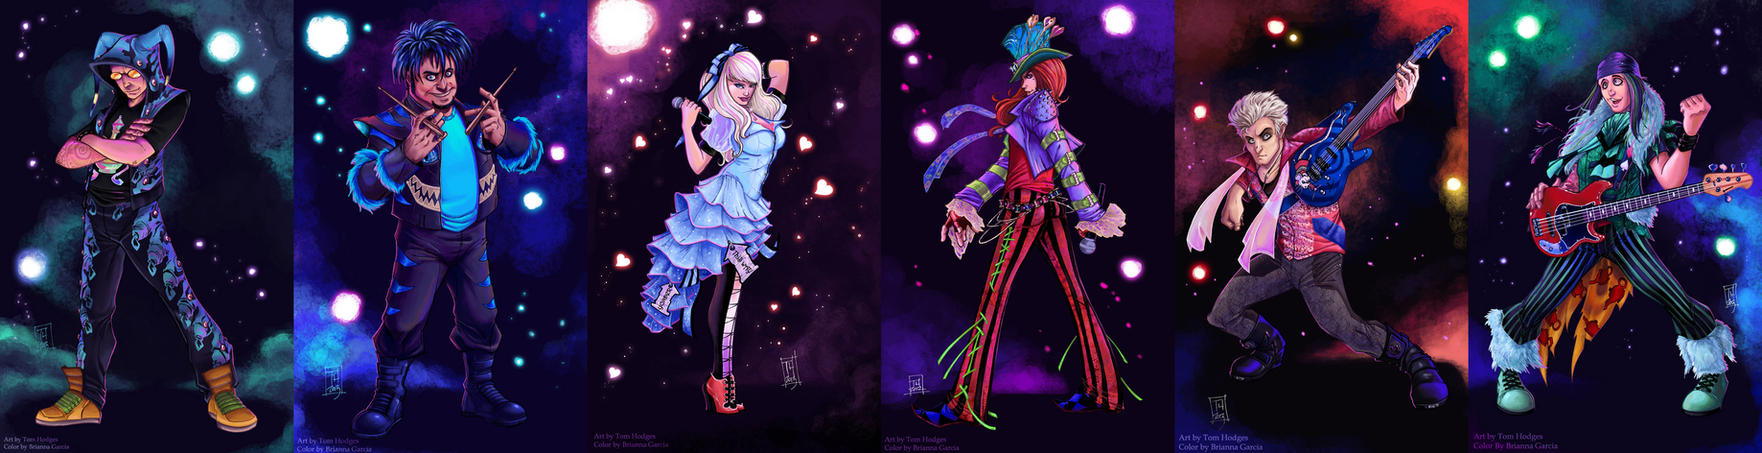 Mad T Party Band by briannacherrygarcia